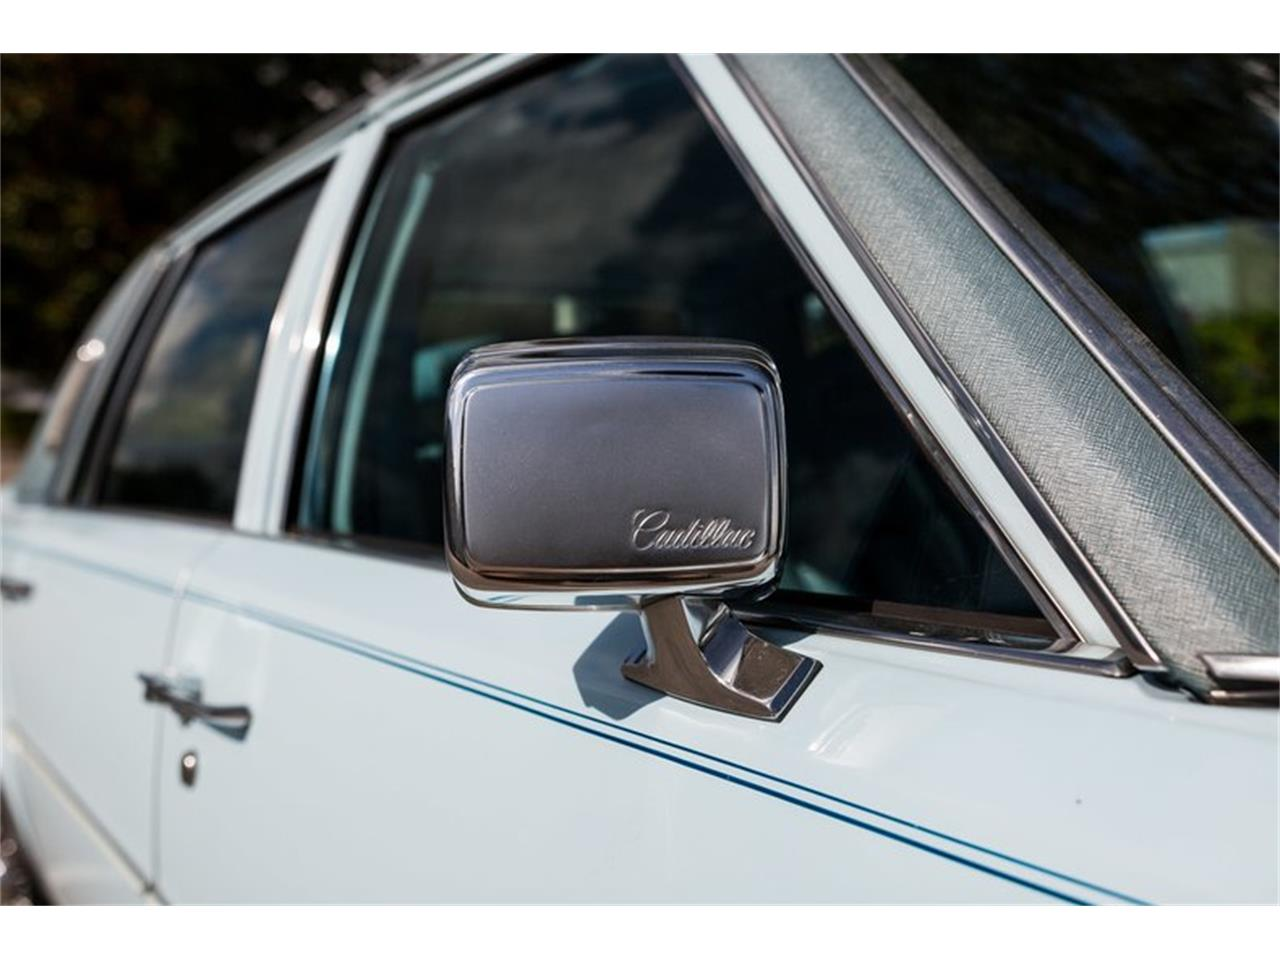 Large Picture of '78 Cadillac Seville - $12,900.00 Offered by Orlando Classic Cars - PX4J